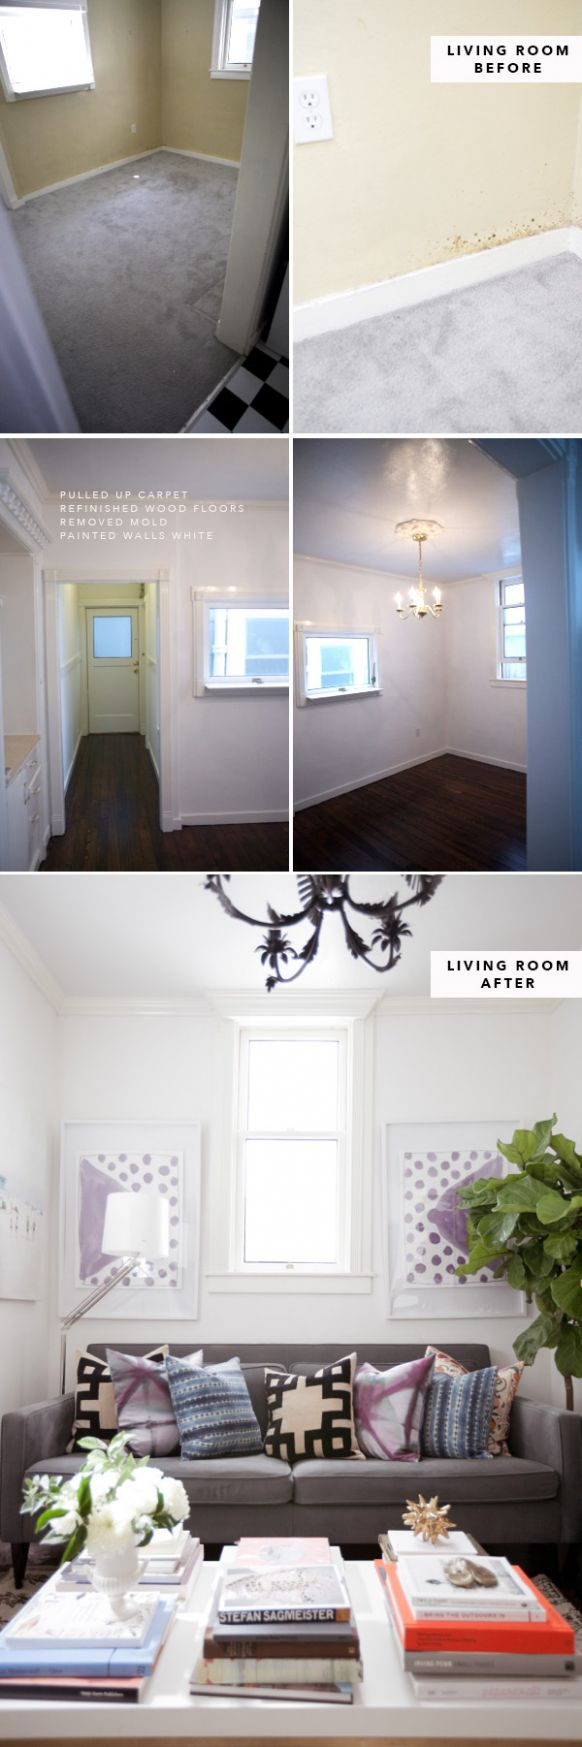 Apartment Pictures: Before and After!